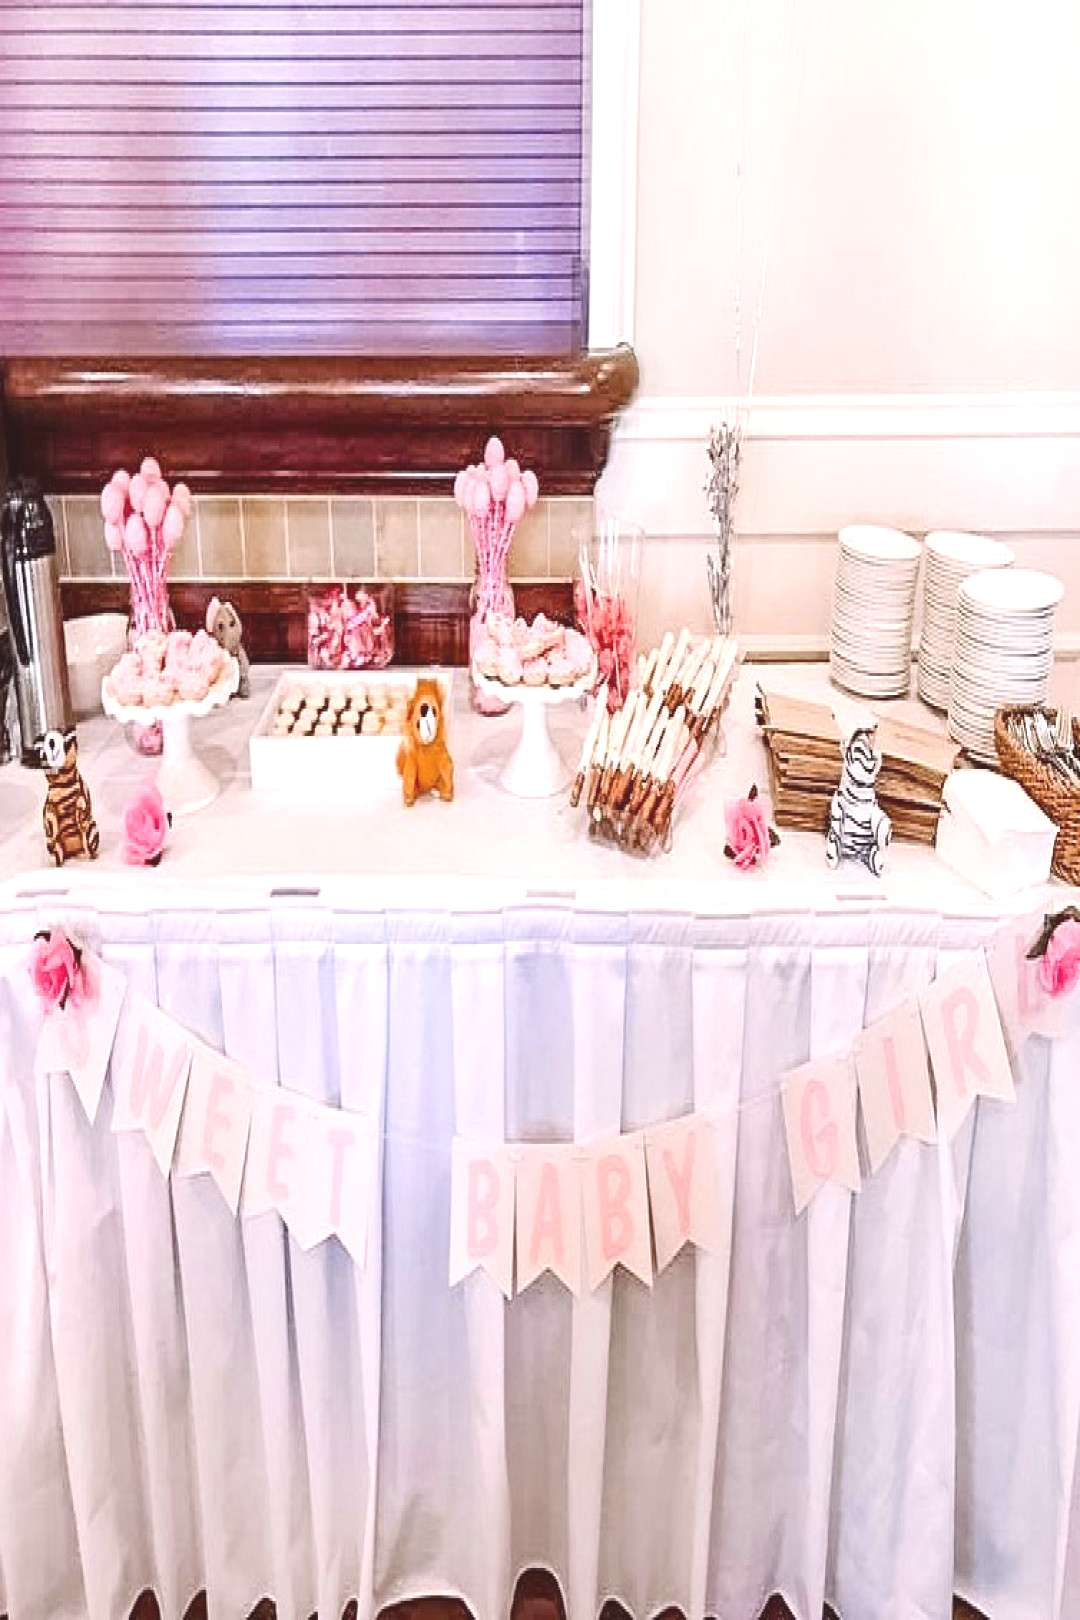 Glitter Free Girl banner to decorate the gorgeous sweets table by